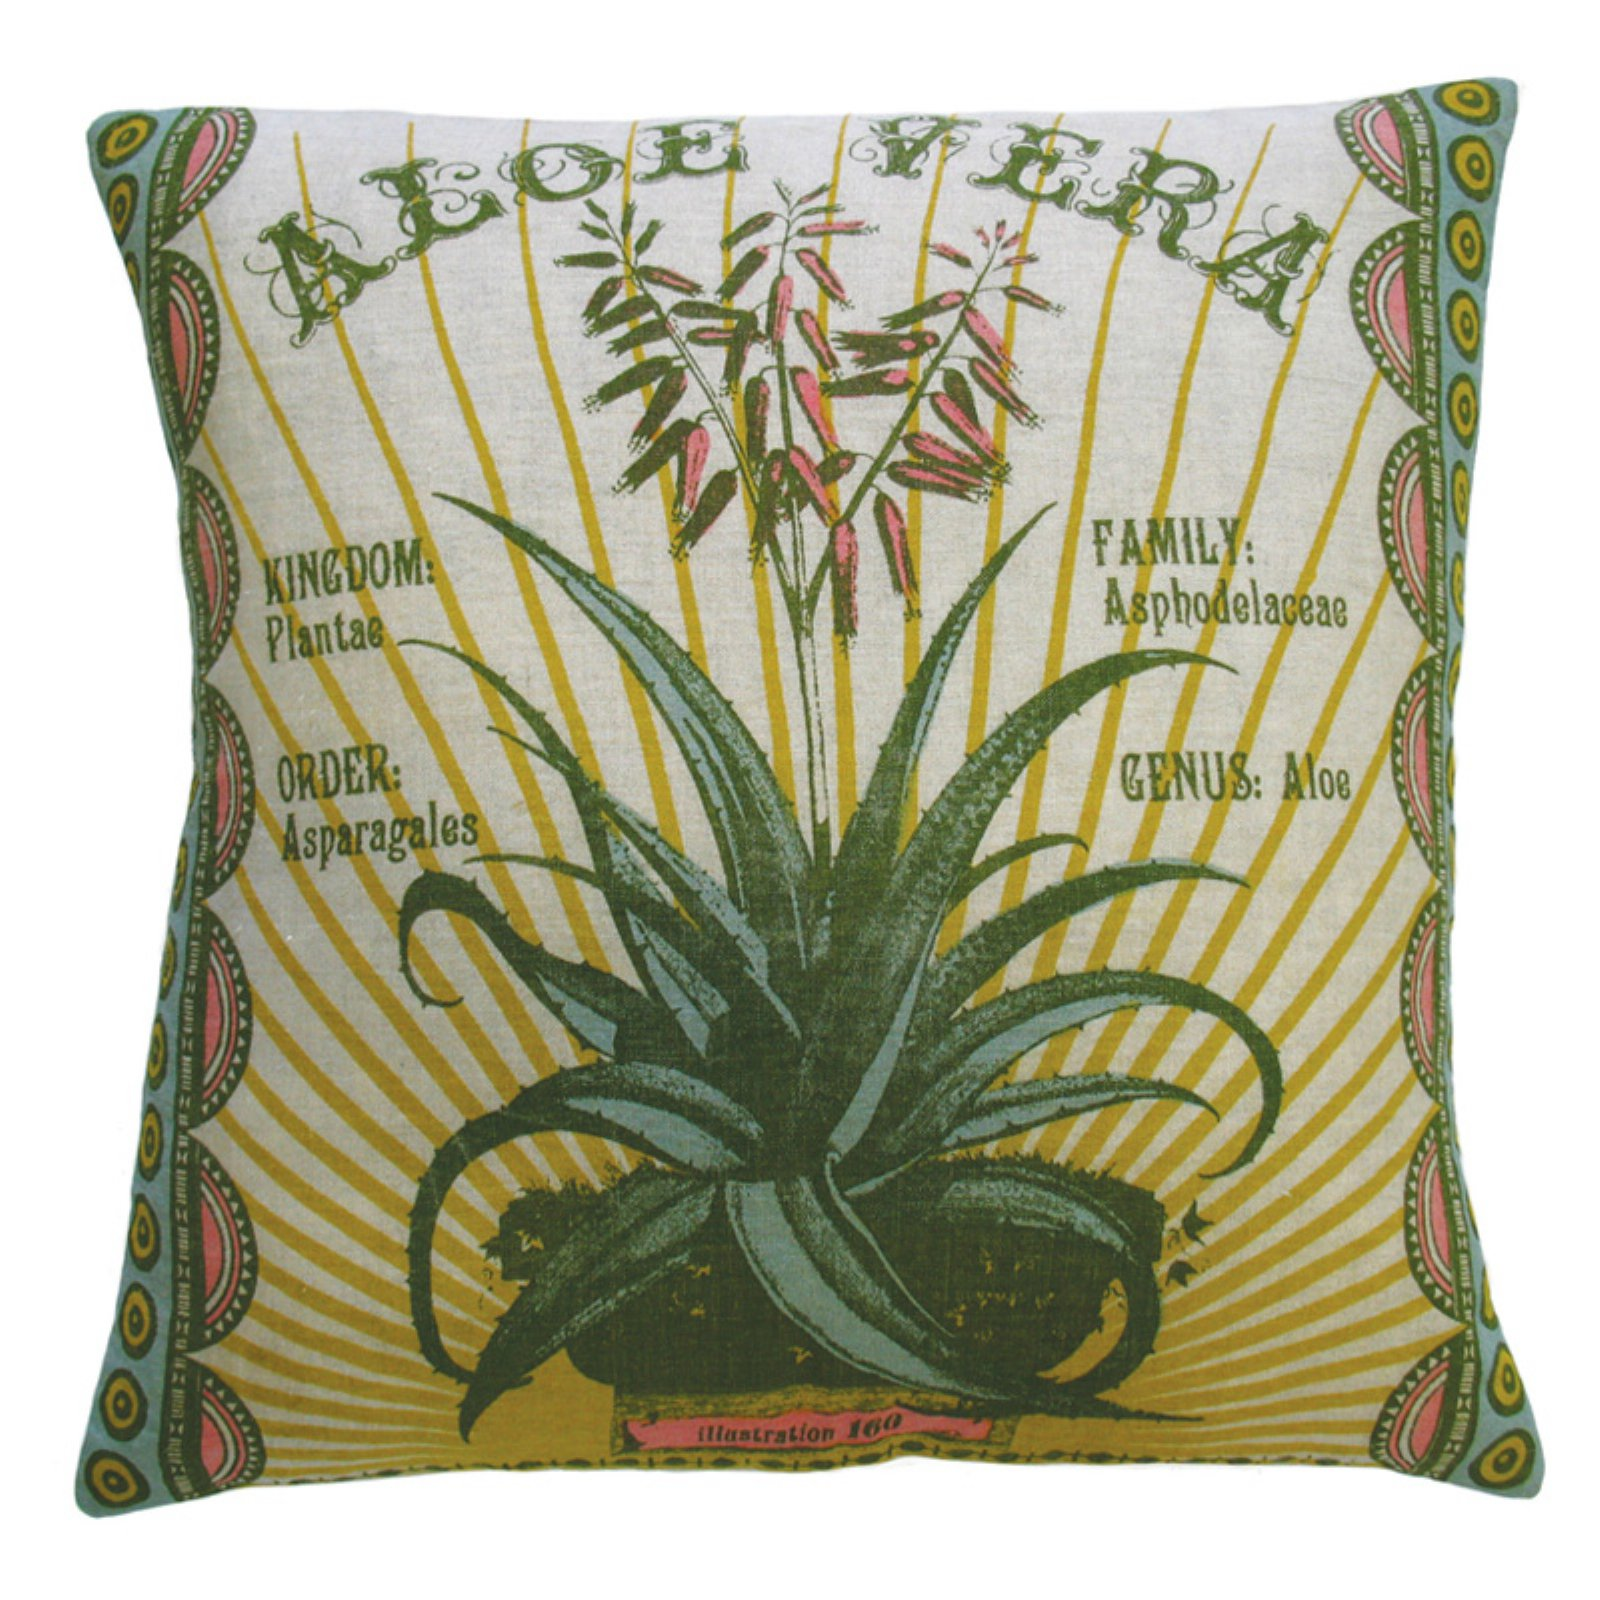 Koko Company Botanica Aloe Vera Decorative Pillow